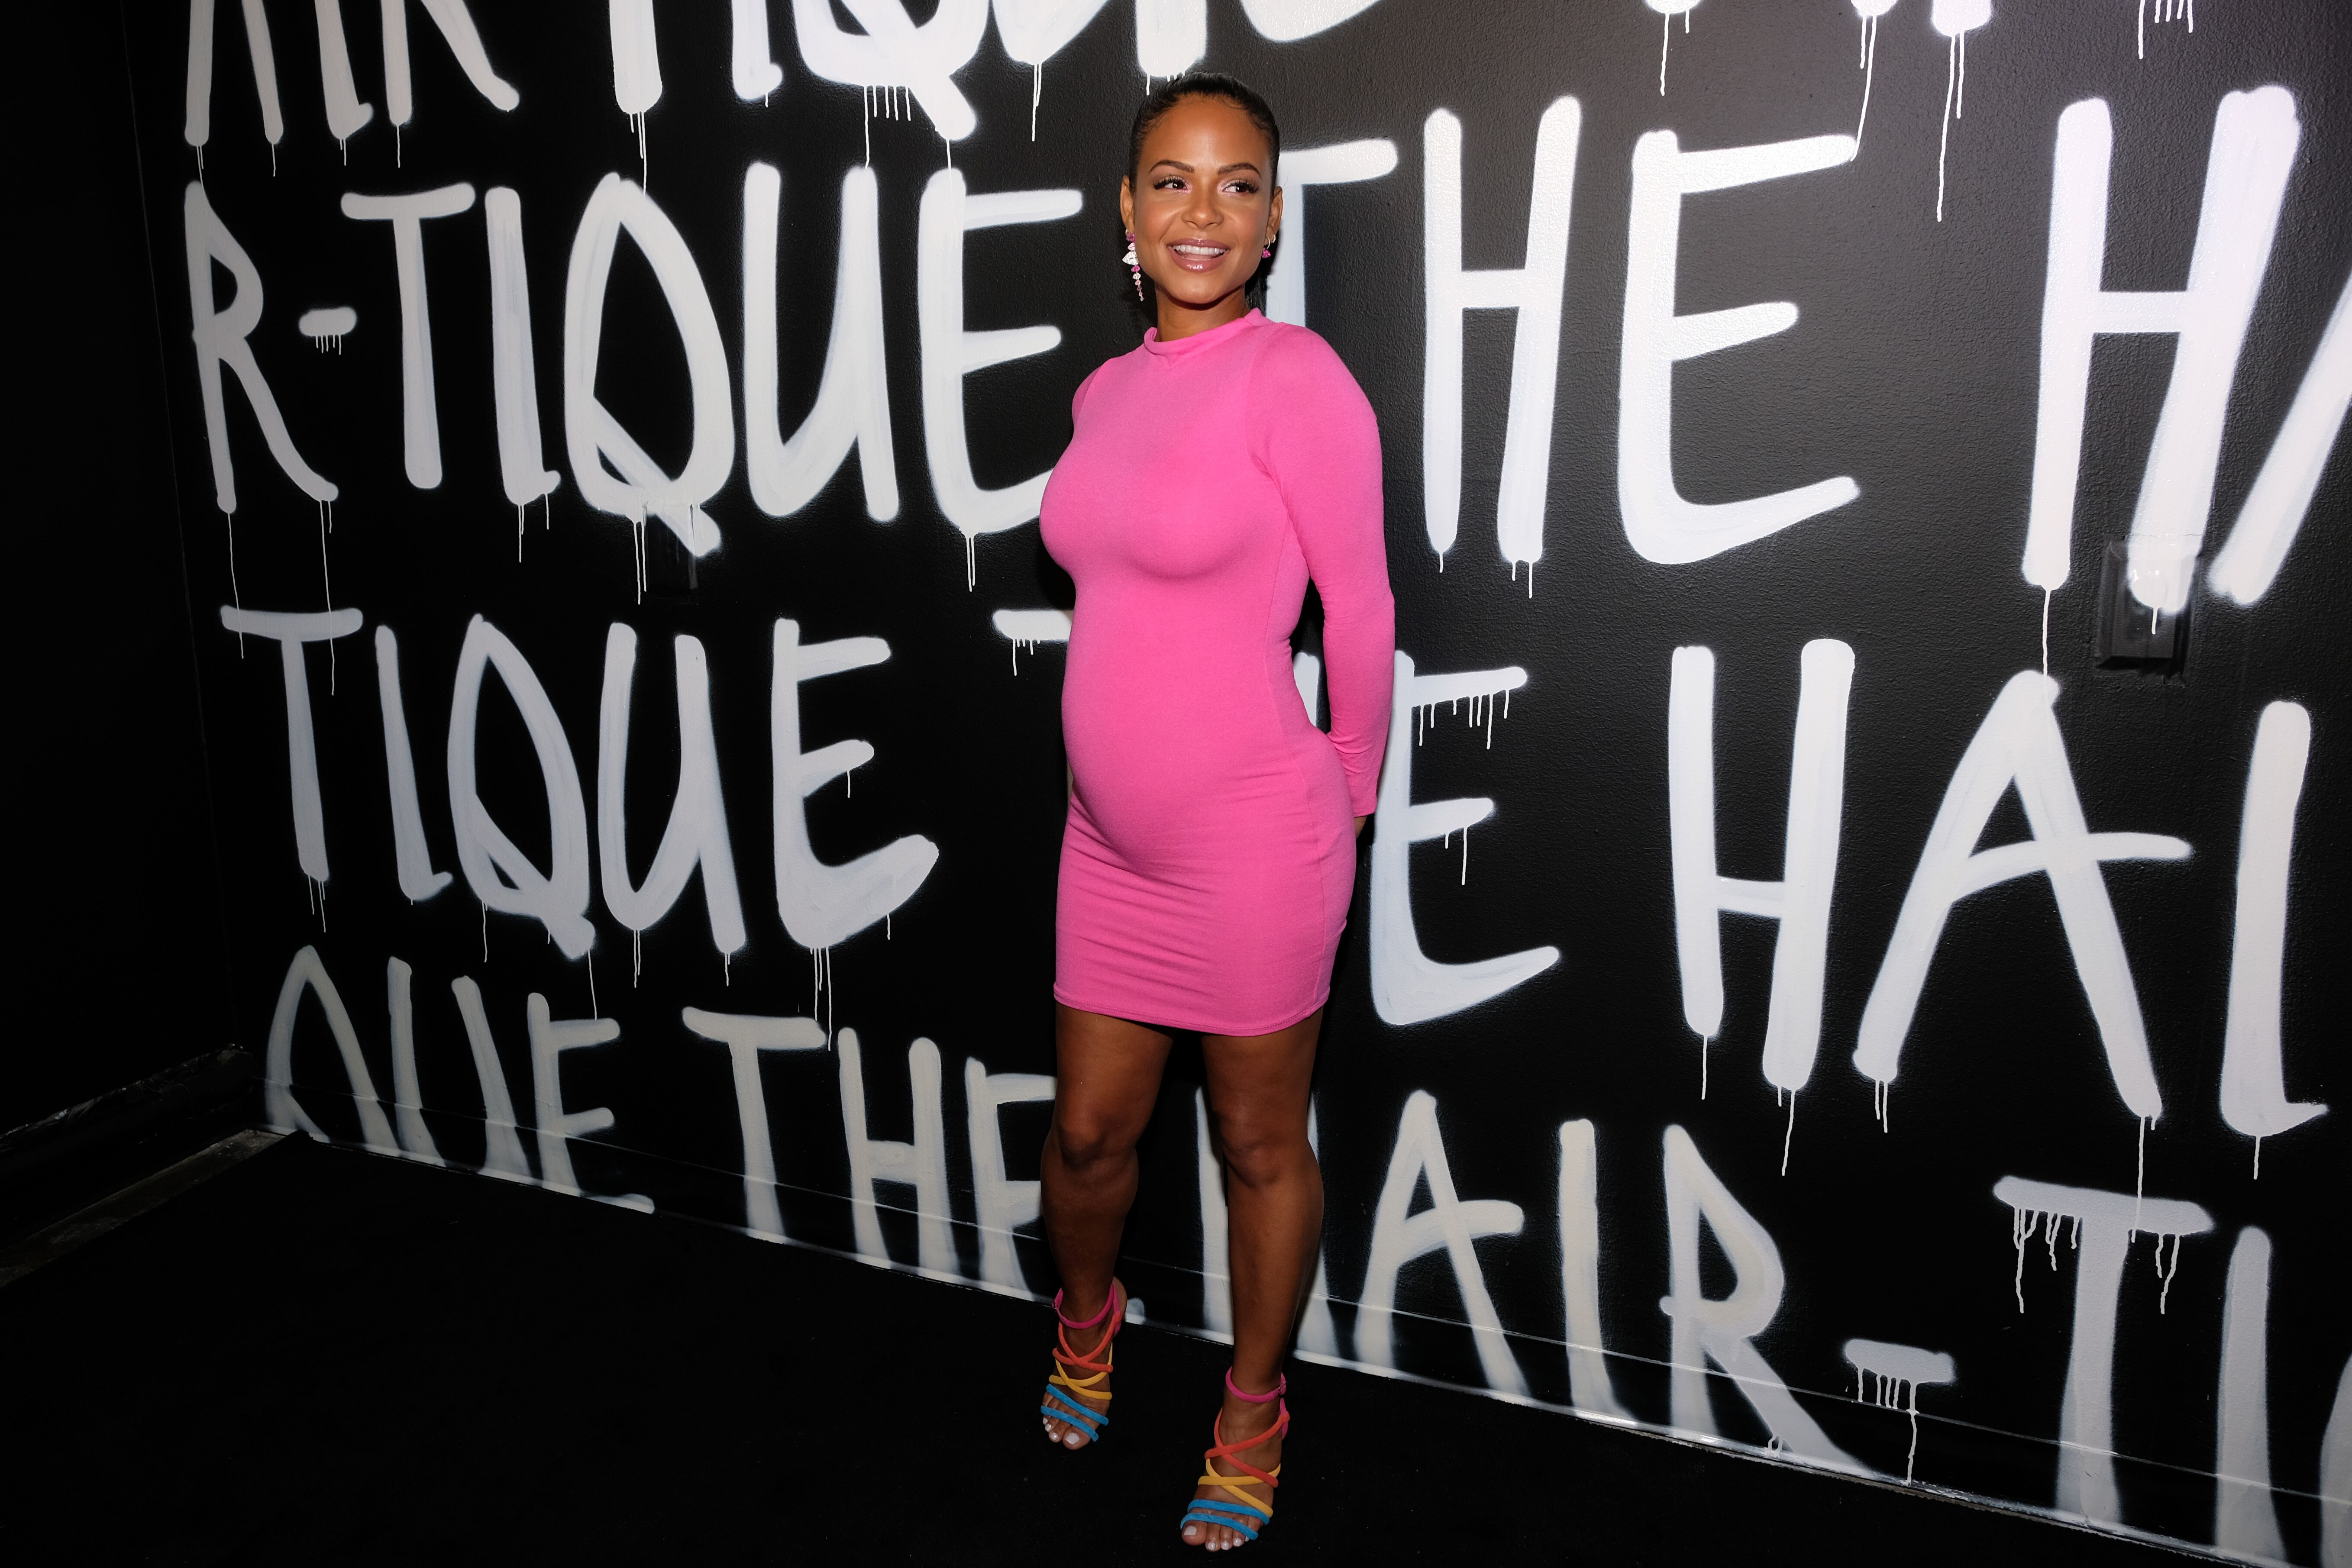 Christina Milian attends an event while pregnant with her second child | Source: Getty Images/GlobalImagesUkraine